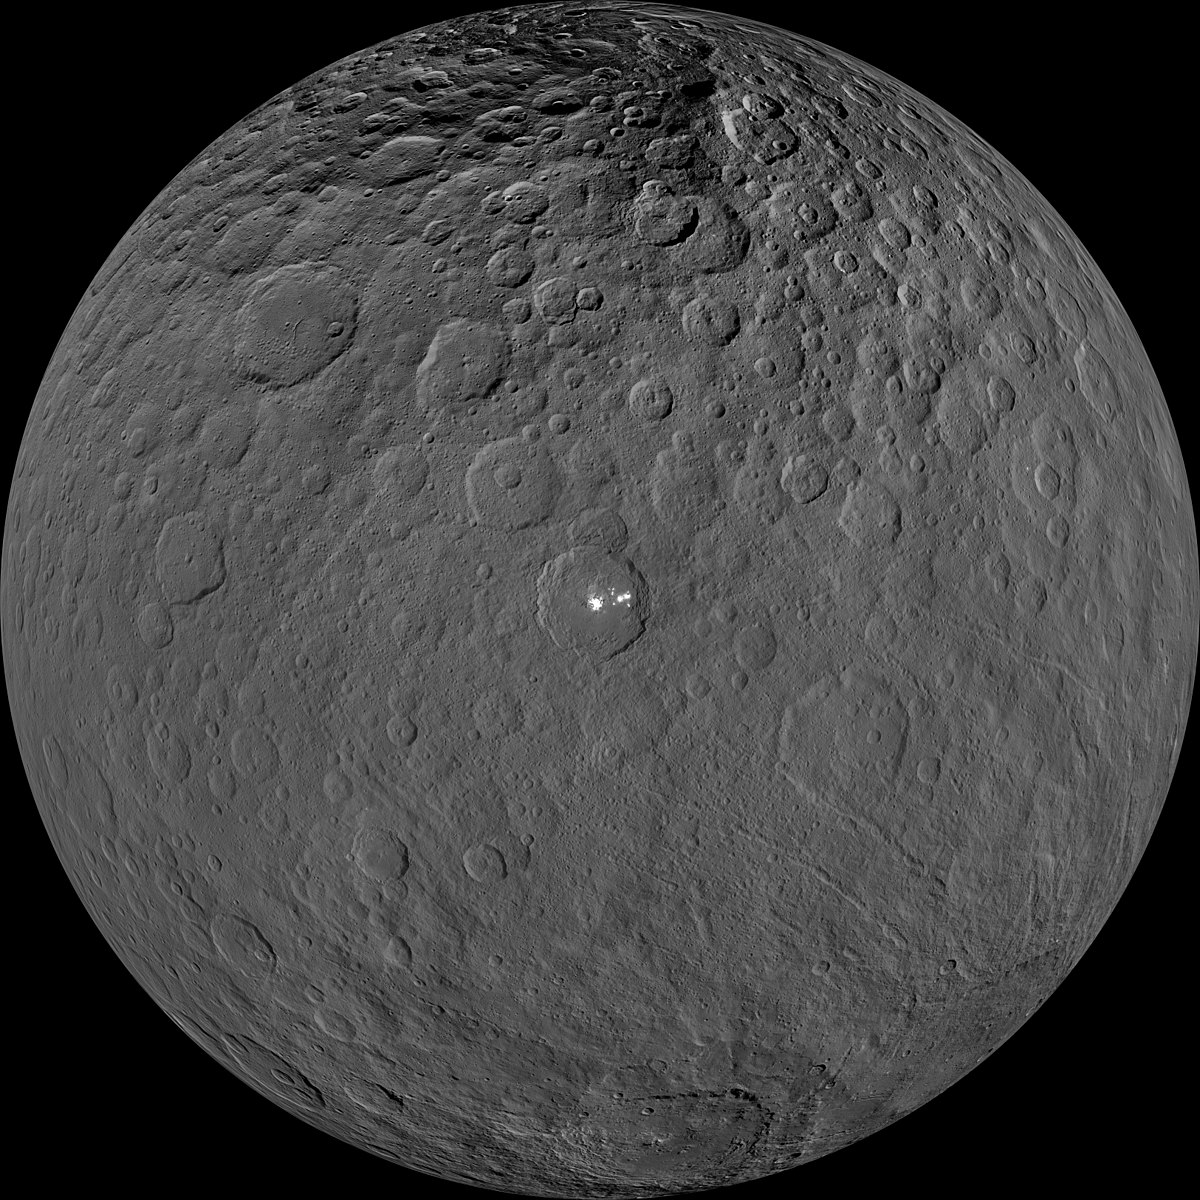 High-resolution view of Ceres taken during its Low-Altitude Mapping Orbit PIA21906-Ceres-DwarfPlanet-HighResolution-Dawn-20170920.jpg